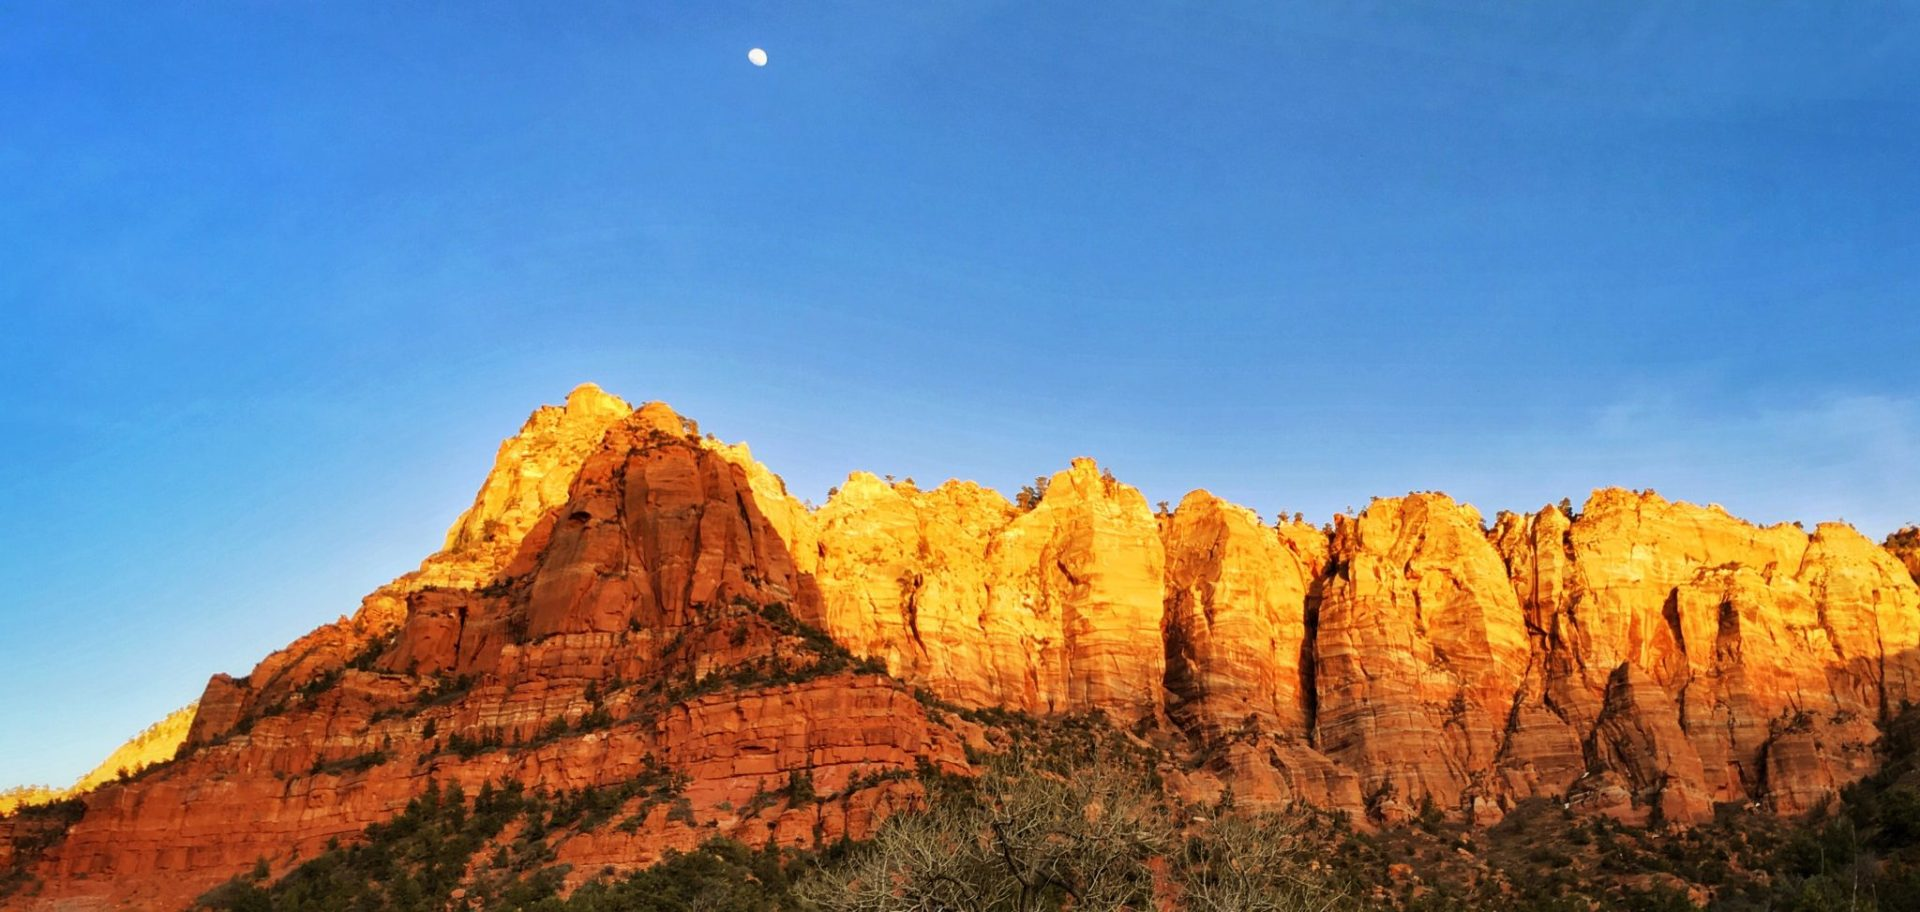 Red mountains at sunset in Utah's Zion National Park